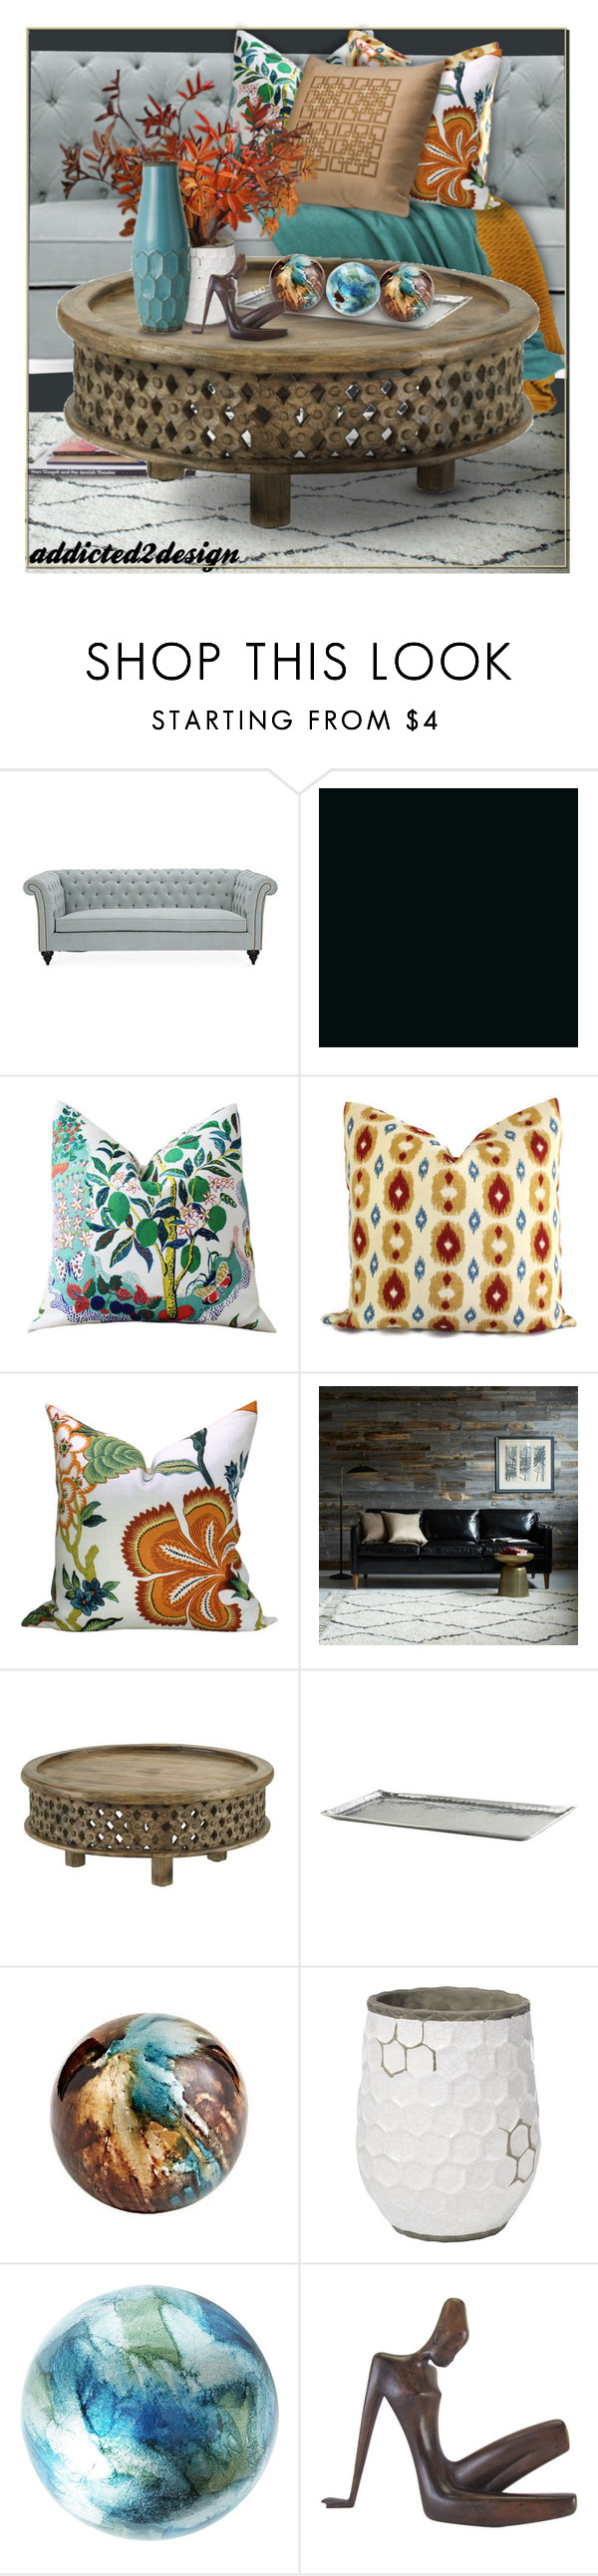 West Elm Inspired By Addicted2design Liked On Polyvore